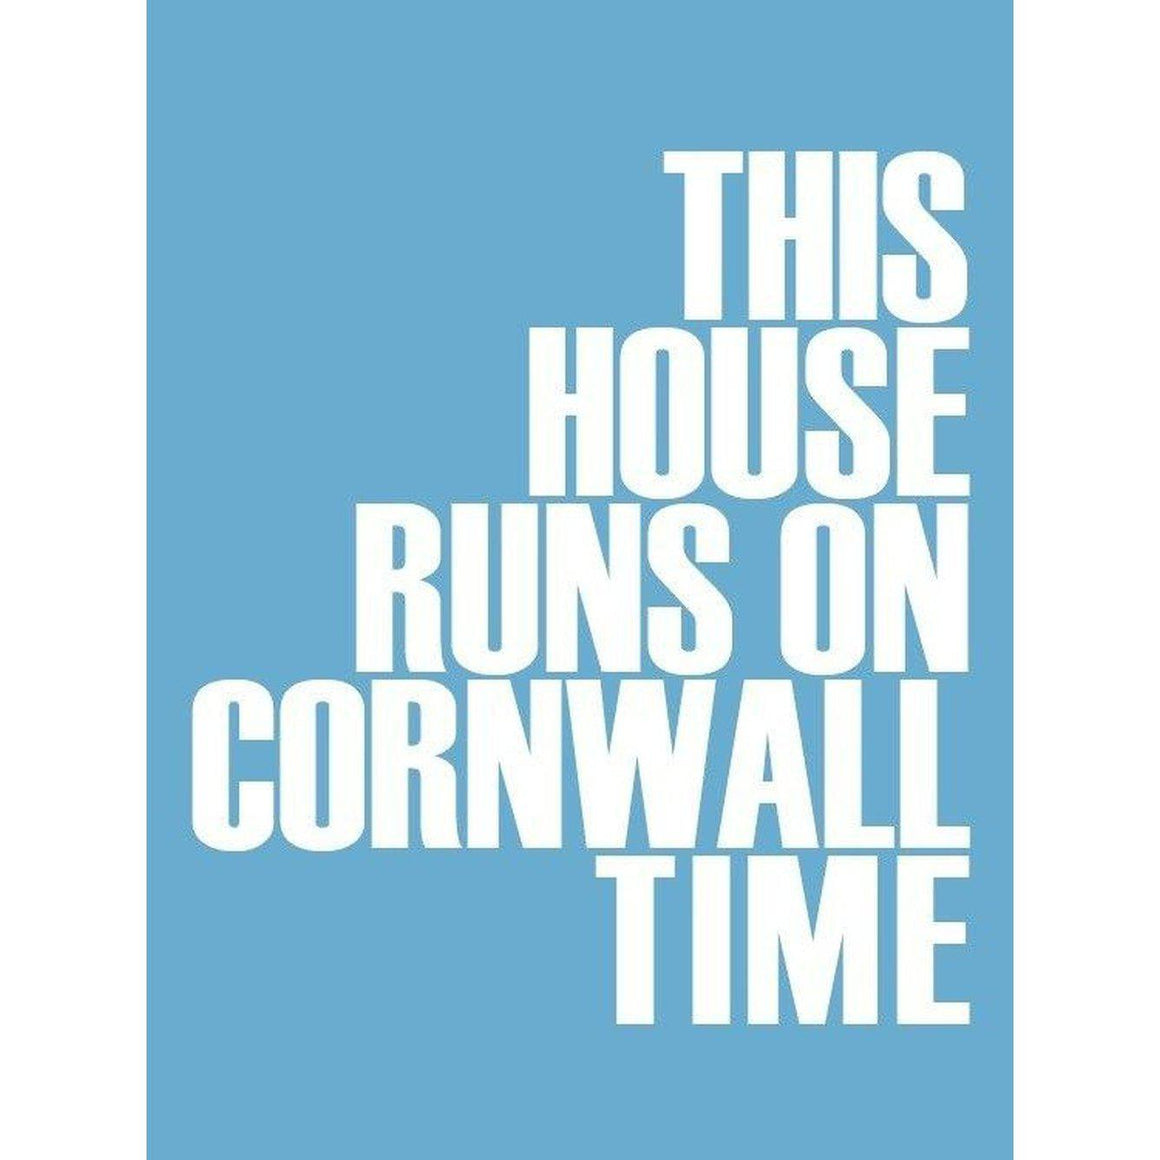 Cornwall Time Typographic Print - Coastal Wall Art-SeaKisses